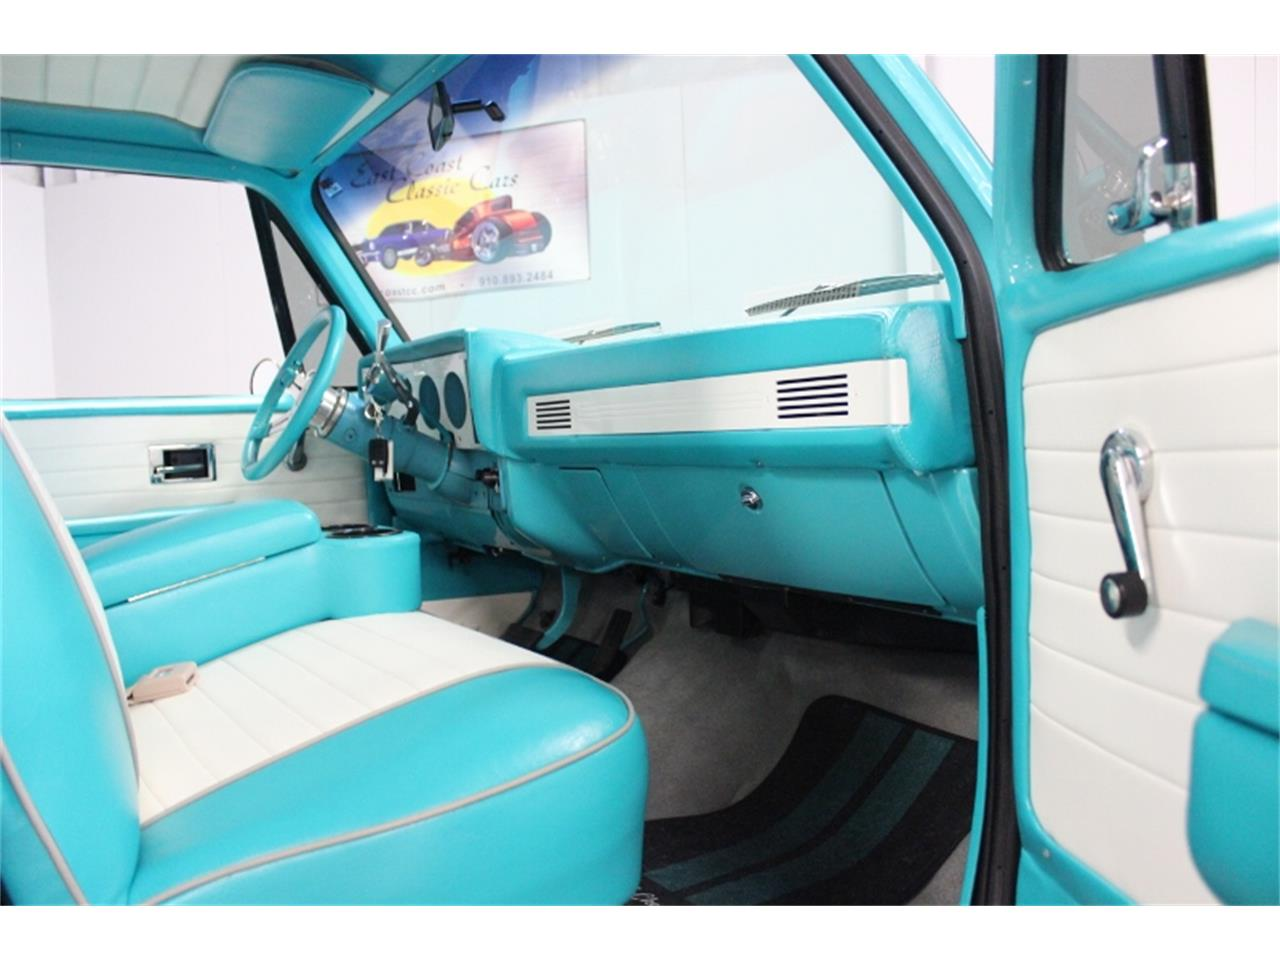 Large Picture of '81 C10 located in North Carolina - $27,000.00 - MDDW